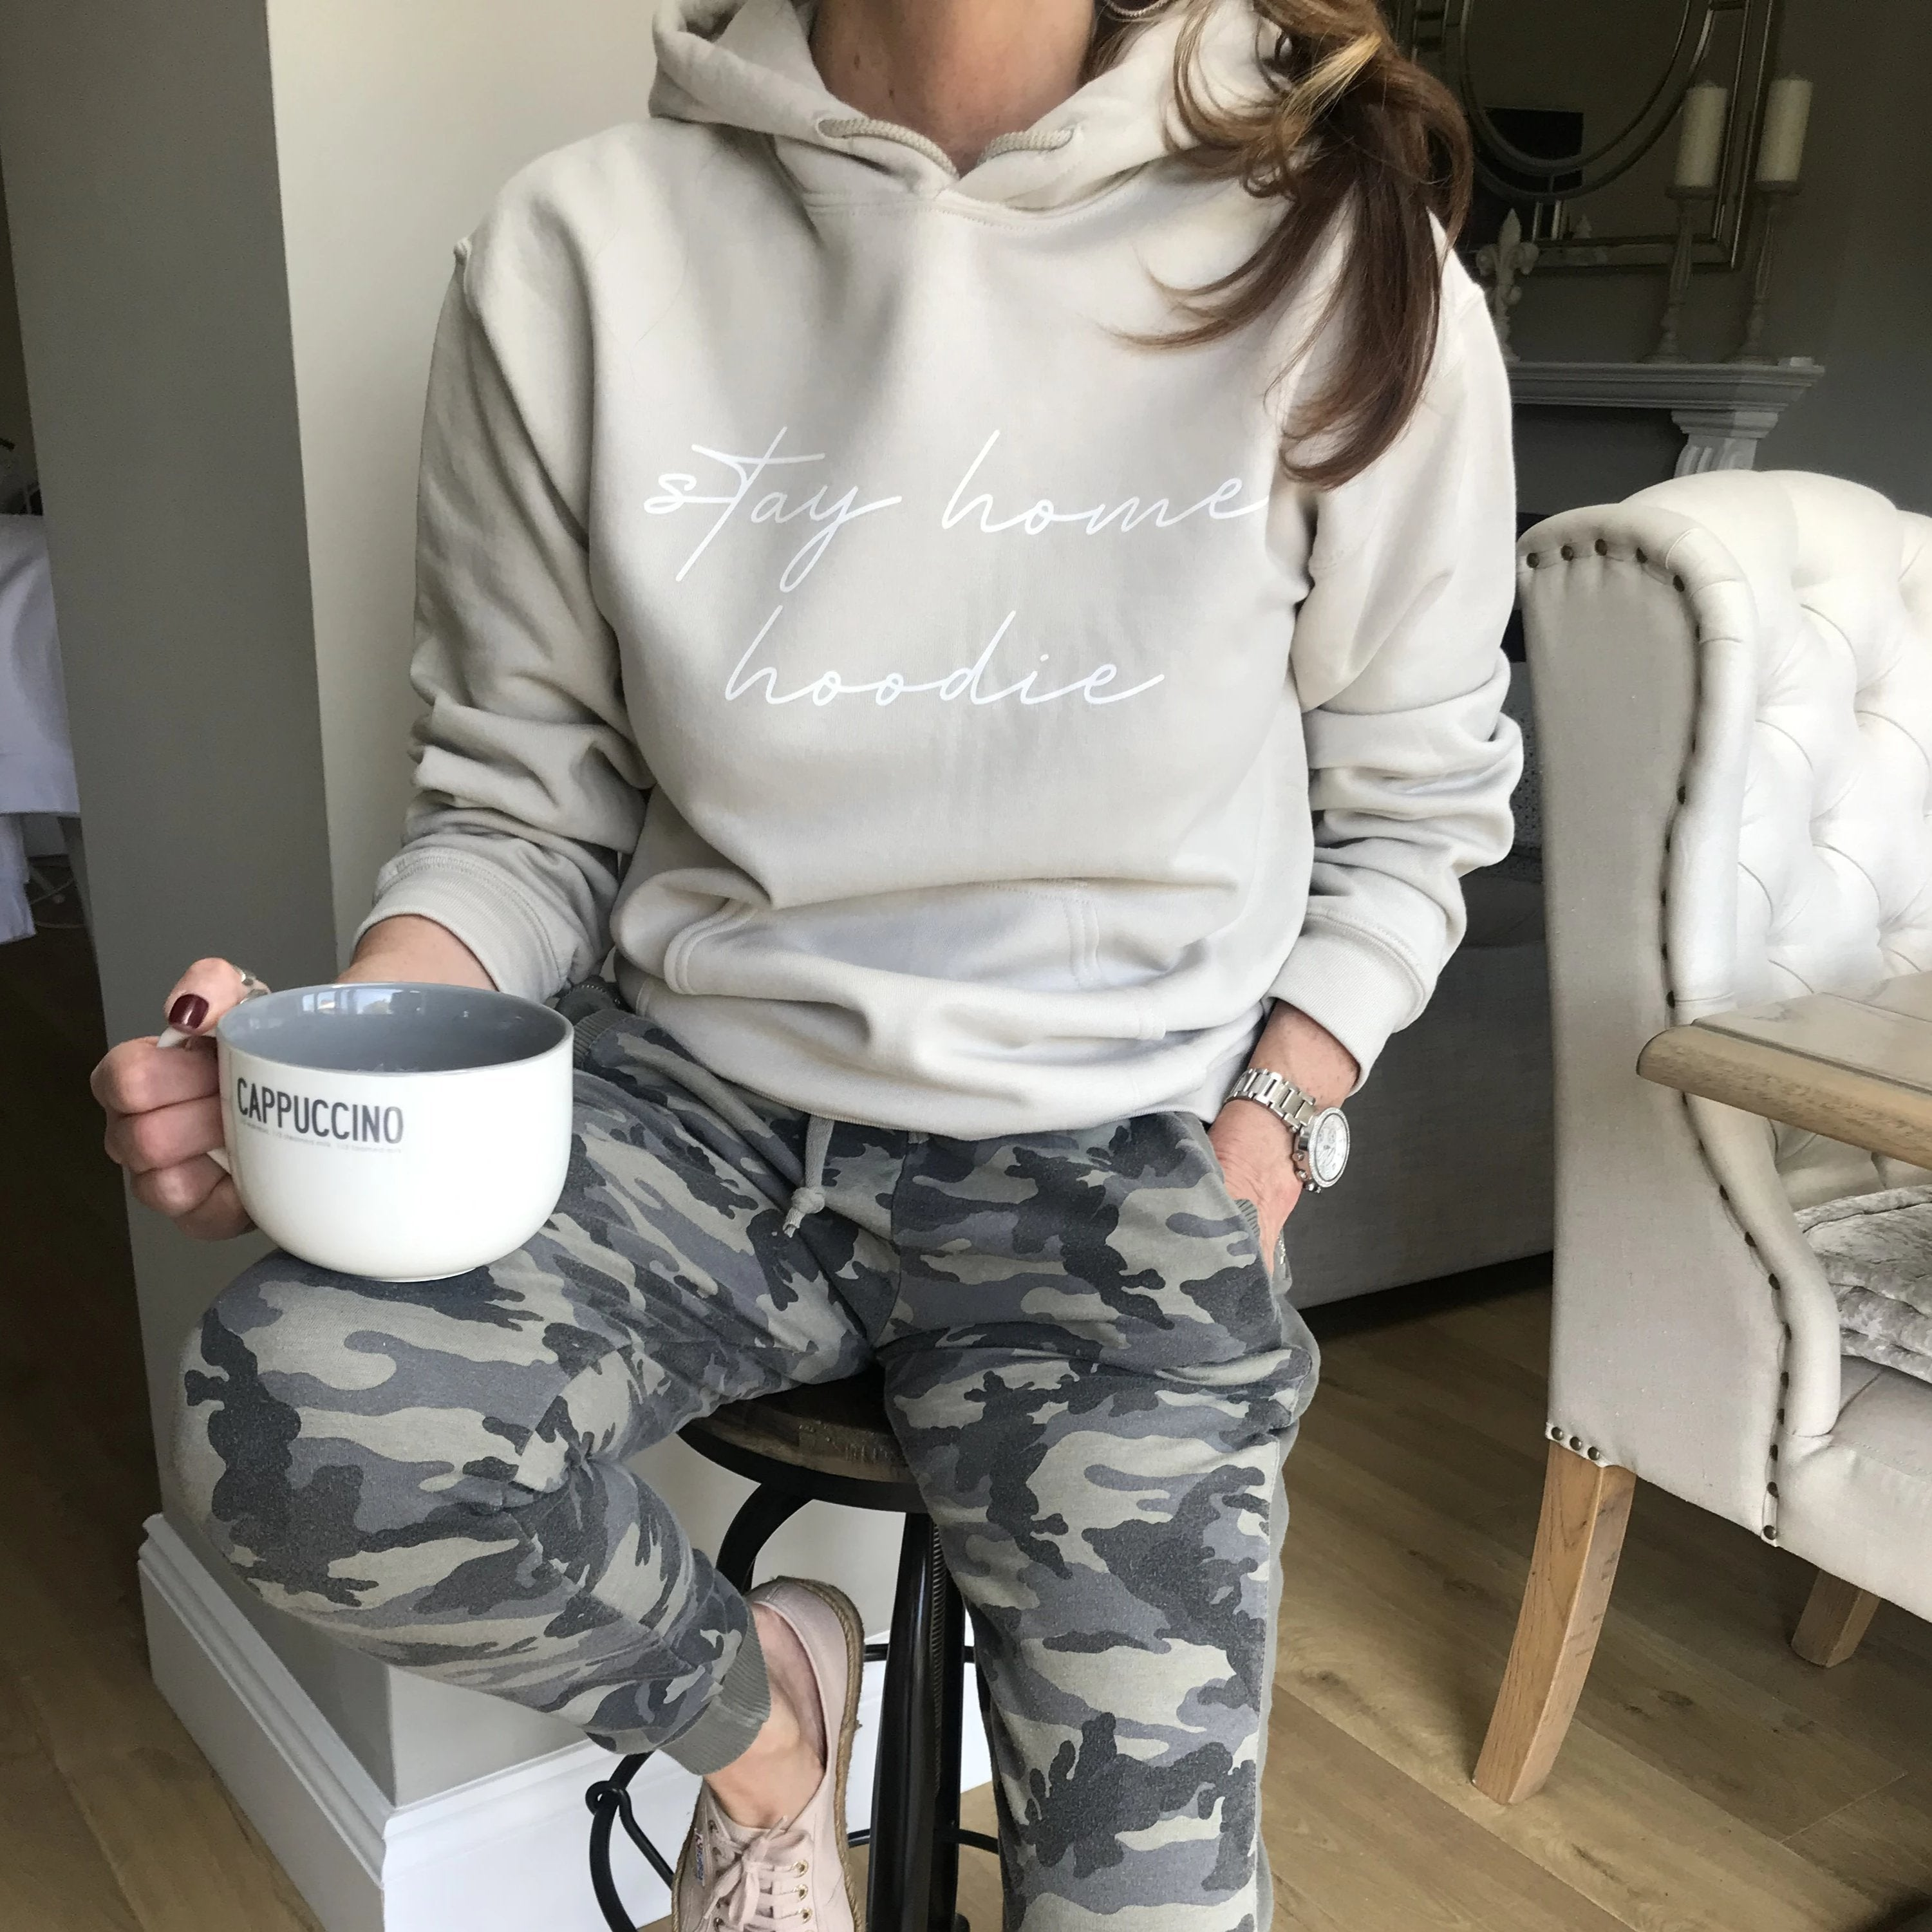 stay home hoodie by Whistling Dixie